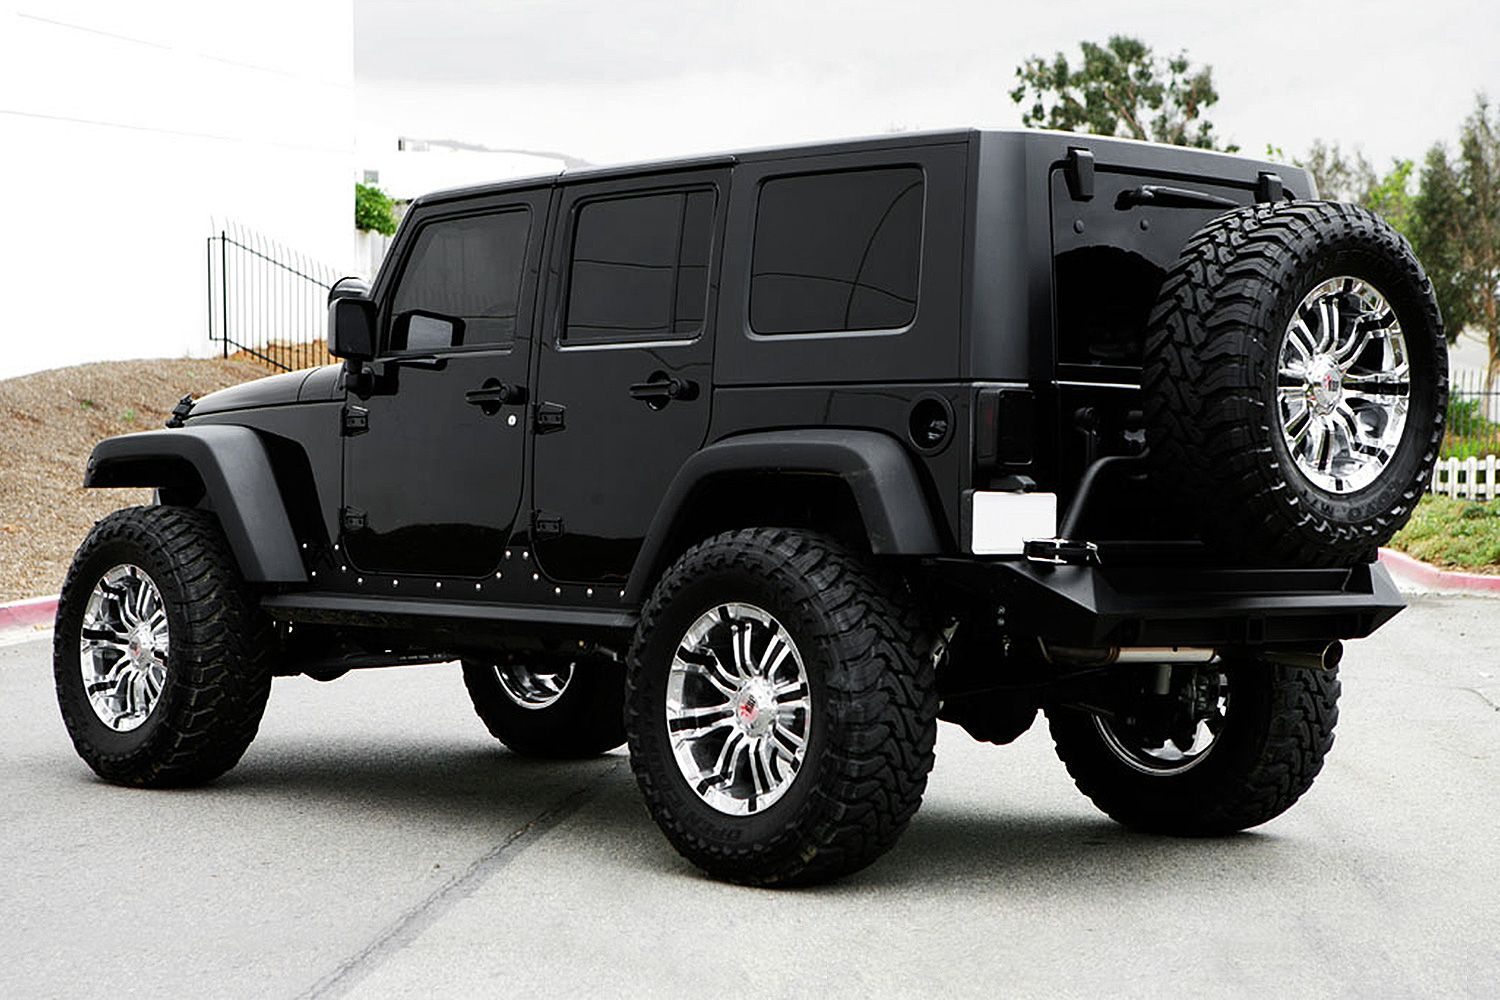 Rbp 94r Chrome With Black Inserts On Jeep Wrangler